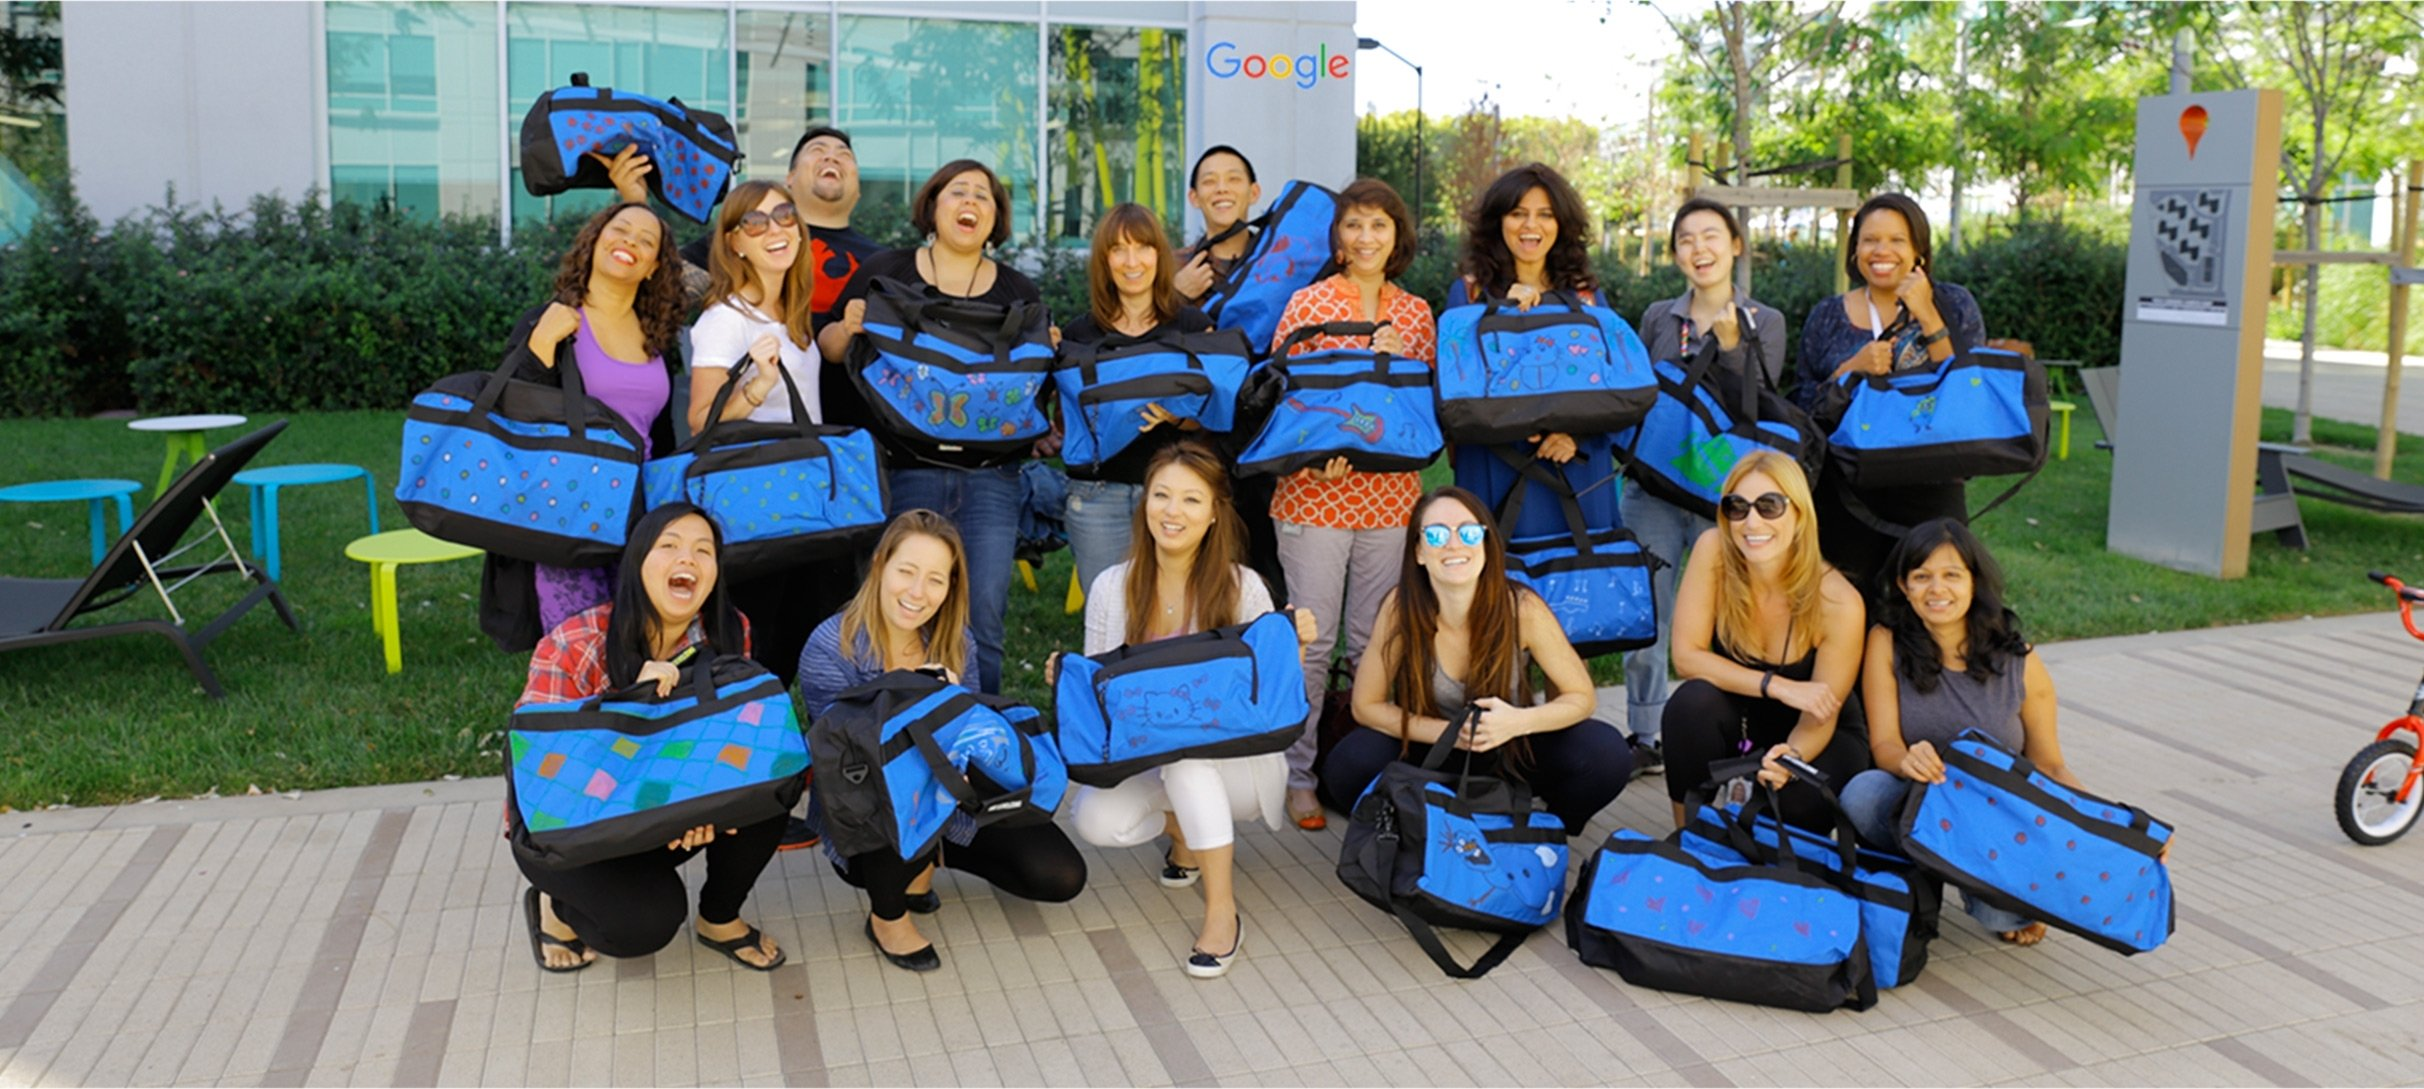 10 Stylish Team Building Ideas For The Office charity team building activities together we rise 2020